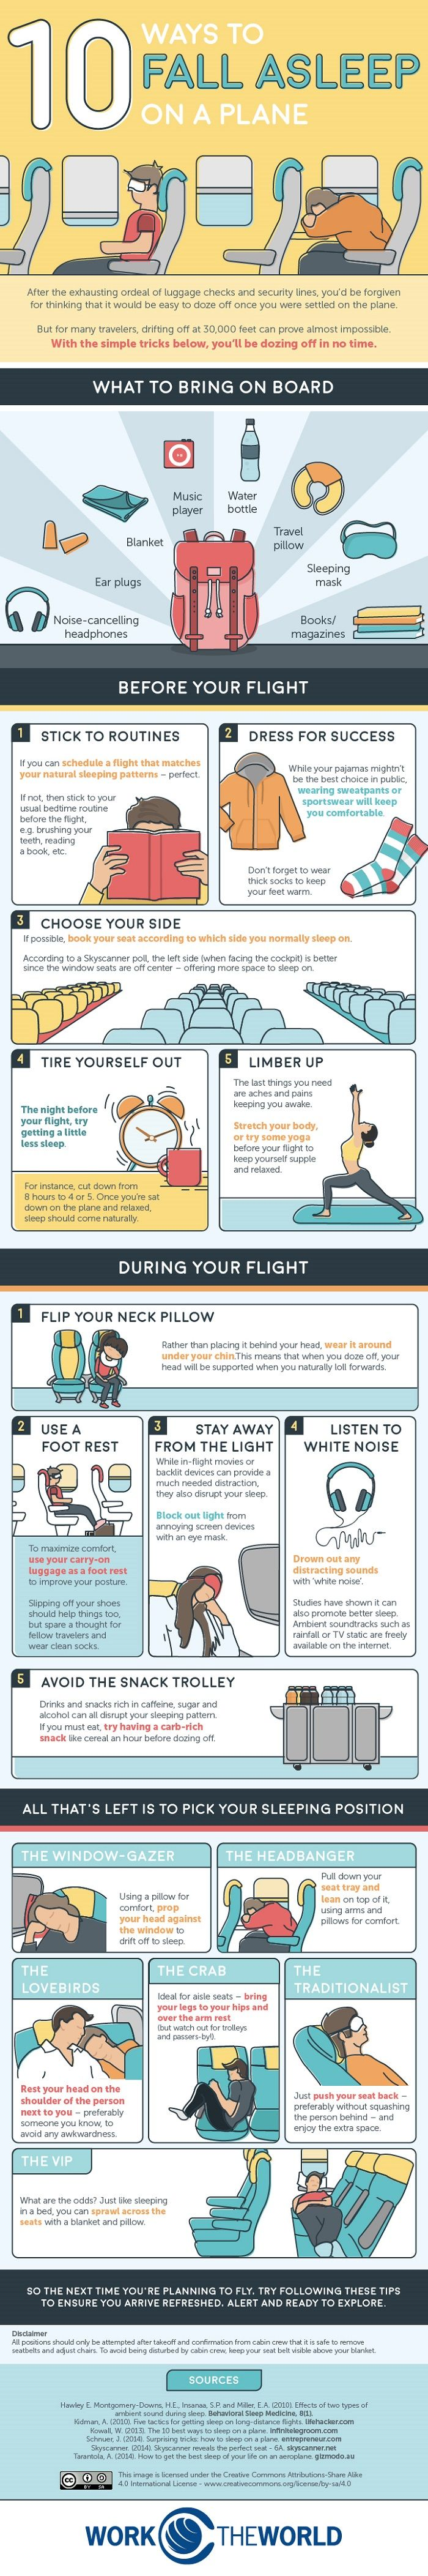 If you're taking a long haul flight trying to get some sleep is a good idea as it will leave you feeling more rested and may help you to avoid jet lag. The problem is that unless you can afford a first class or business class seat that offers flat beds, it can be difficult to get comfortable enough to rest. Due to this problem 'Work the World' has created this handy infographic that will show you how to fall asleep during your flight! Take a look!